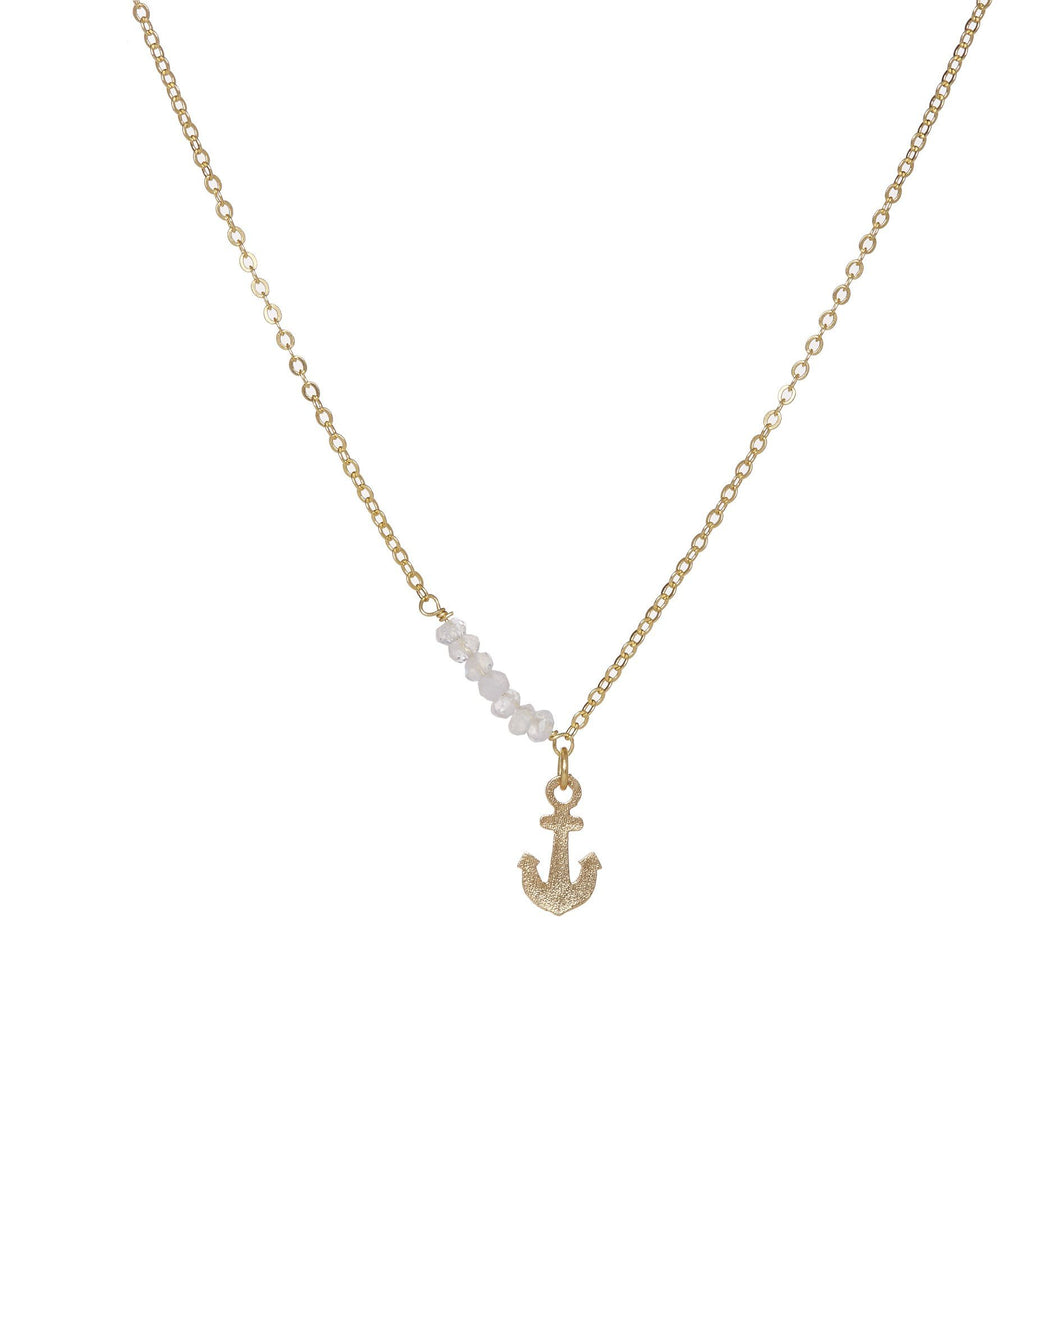 22 Carat Gold Plated Anchor Necklace Jewellery Ashiana London